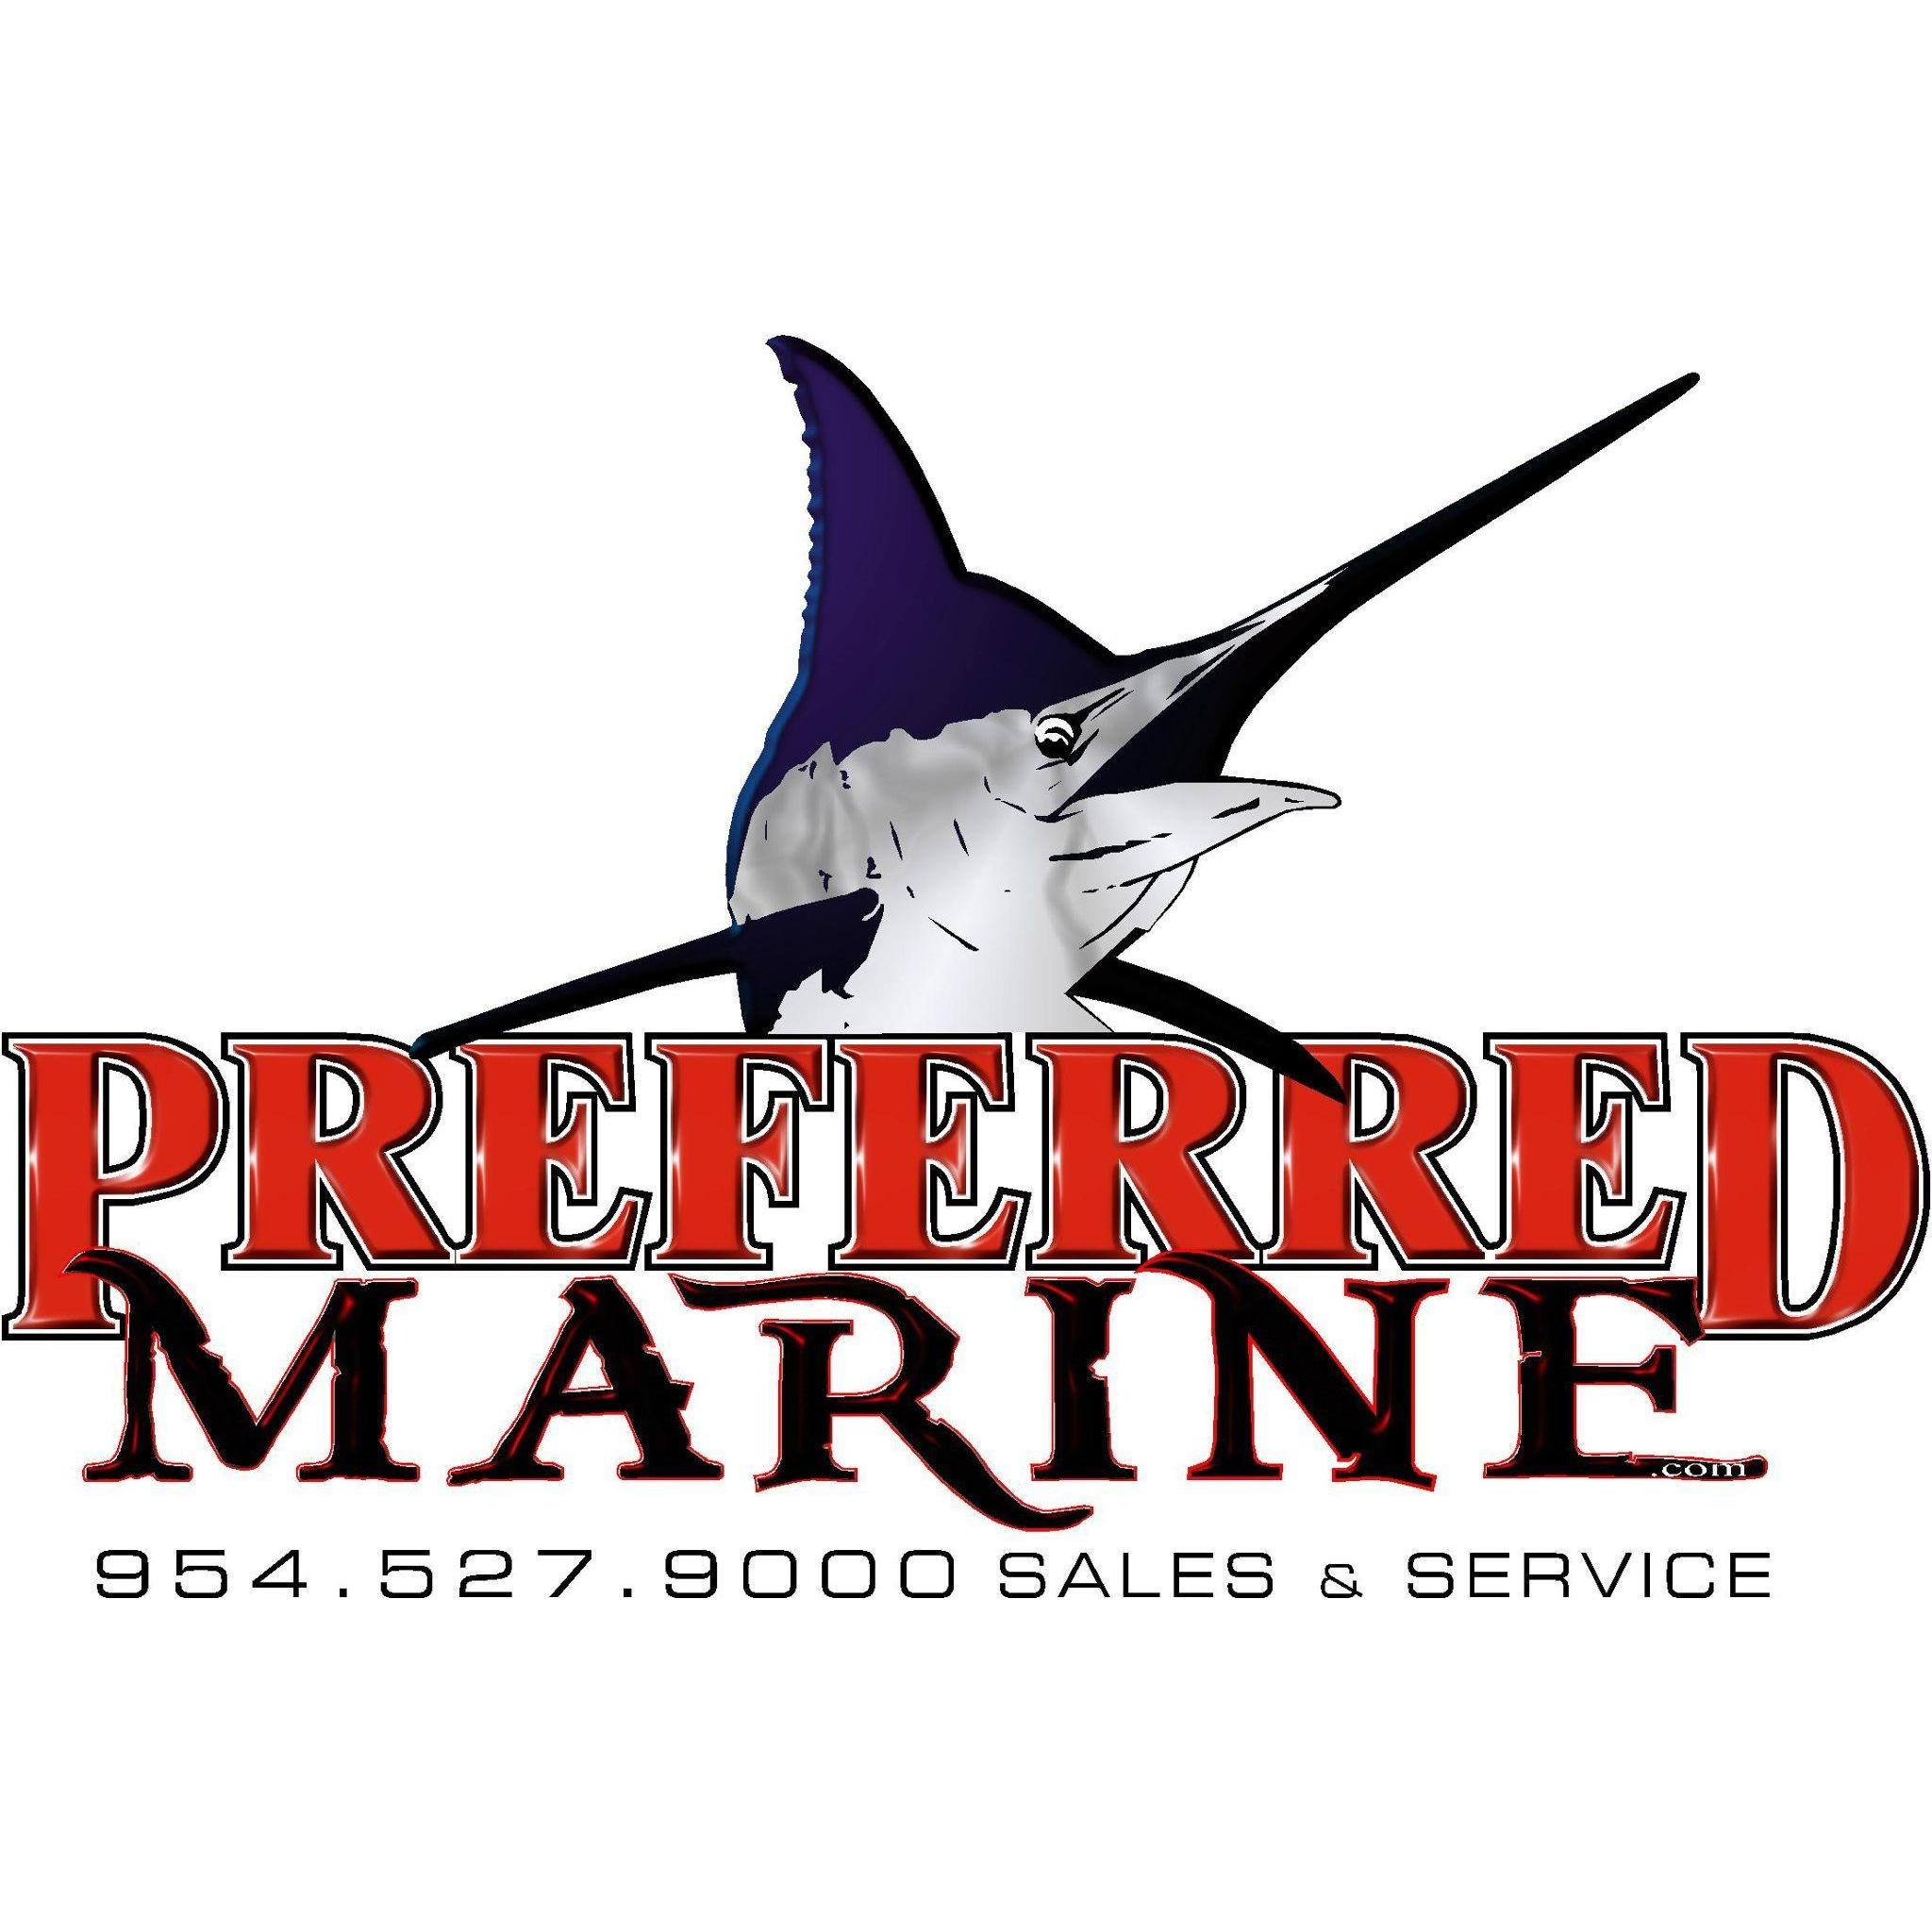 Preferred Marine Sales Group image 5